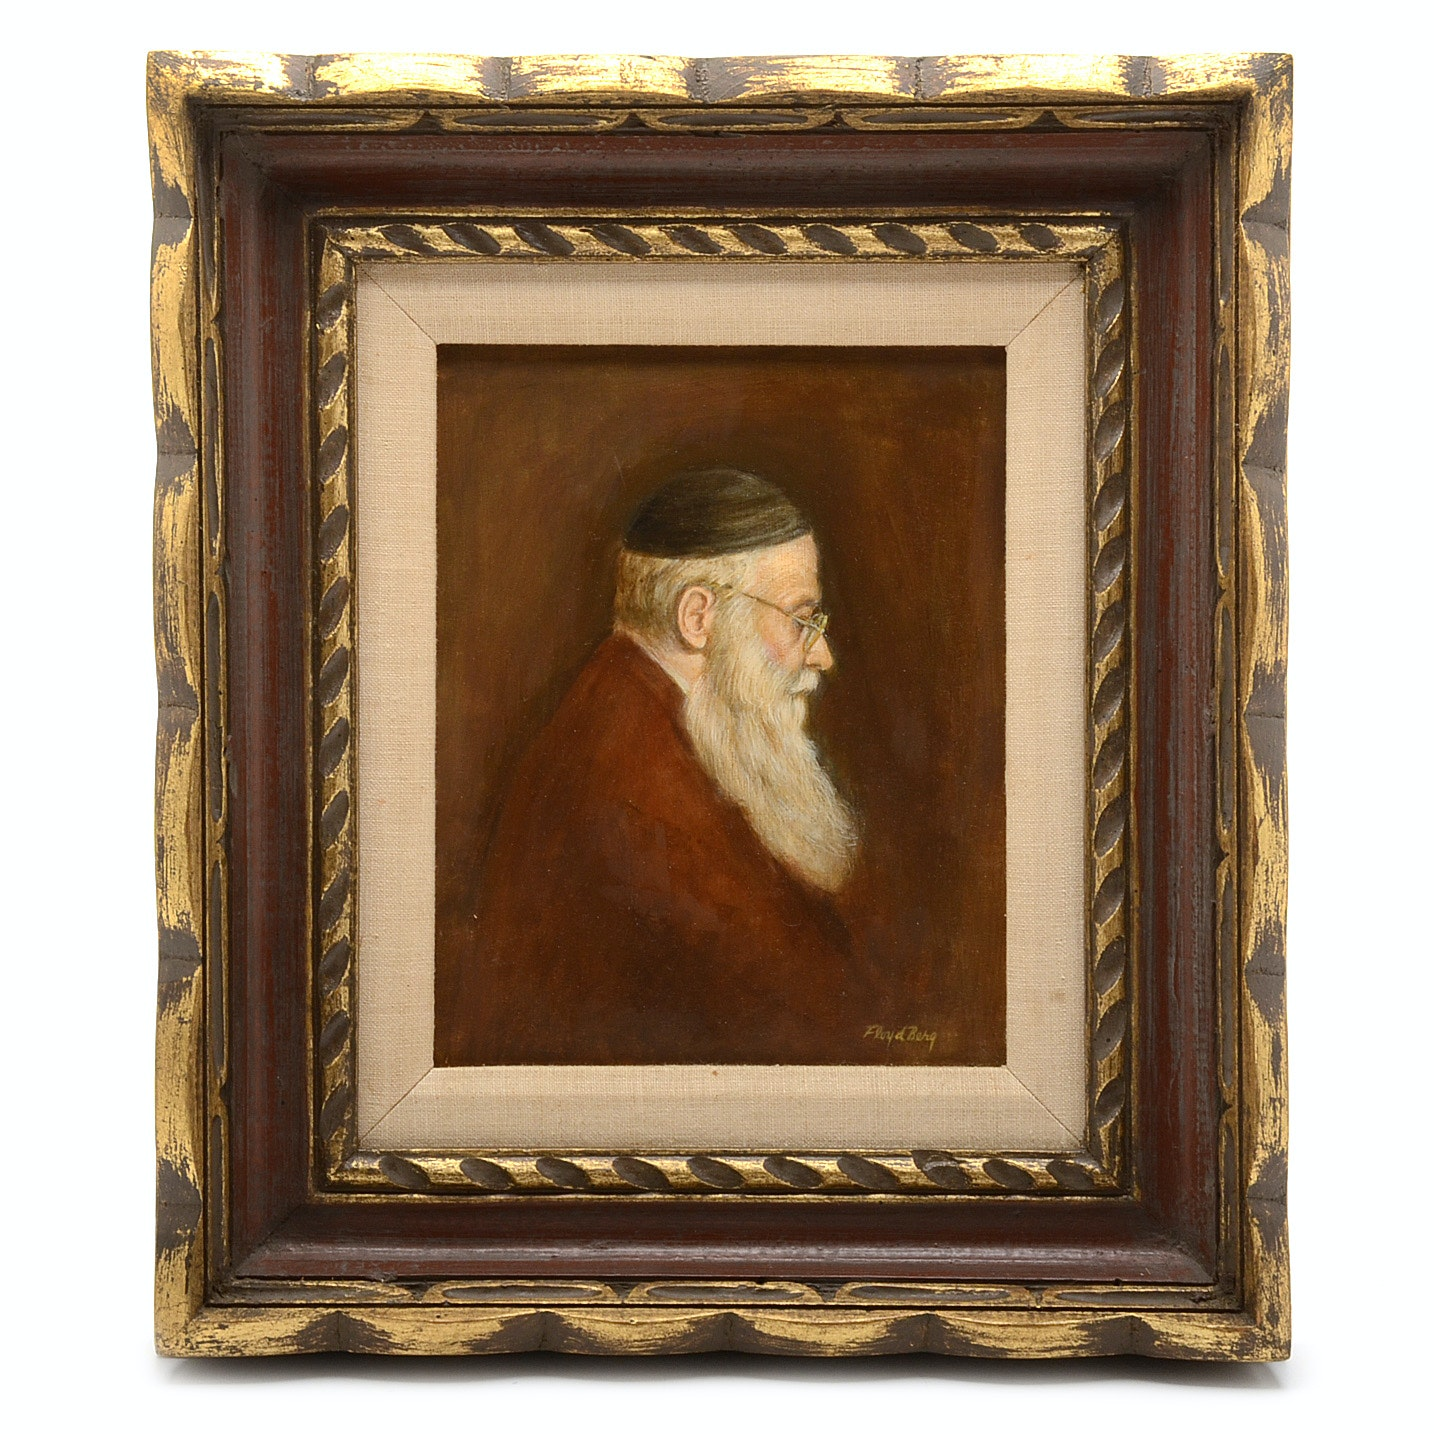 Floyd Berg Signed Oil Painting on Board of a Man in Profile